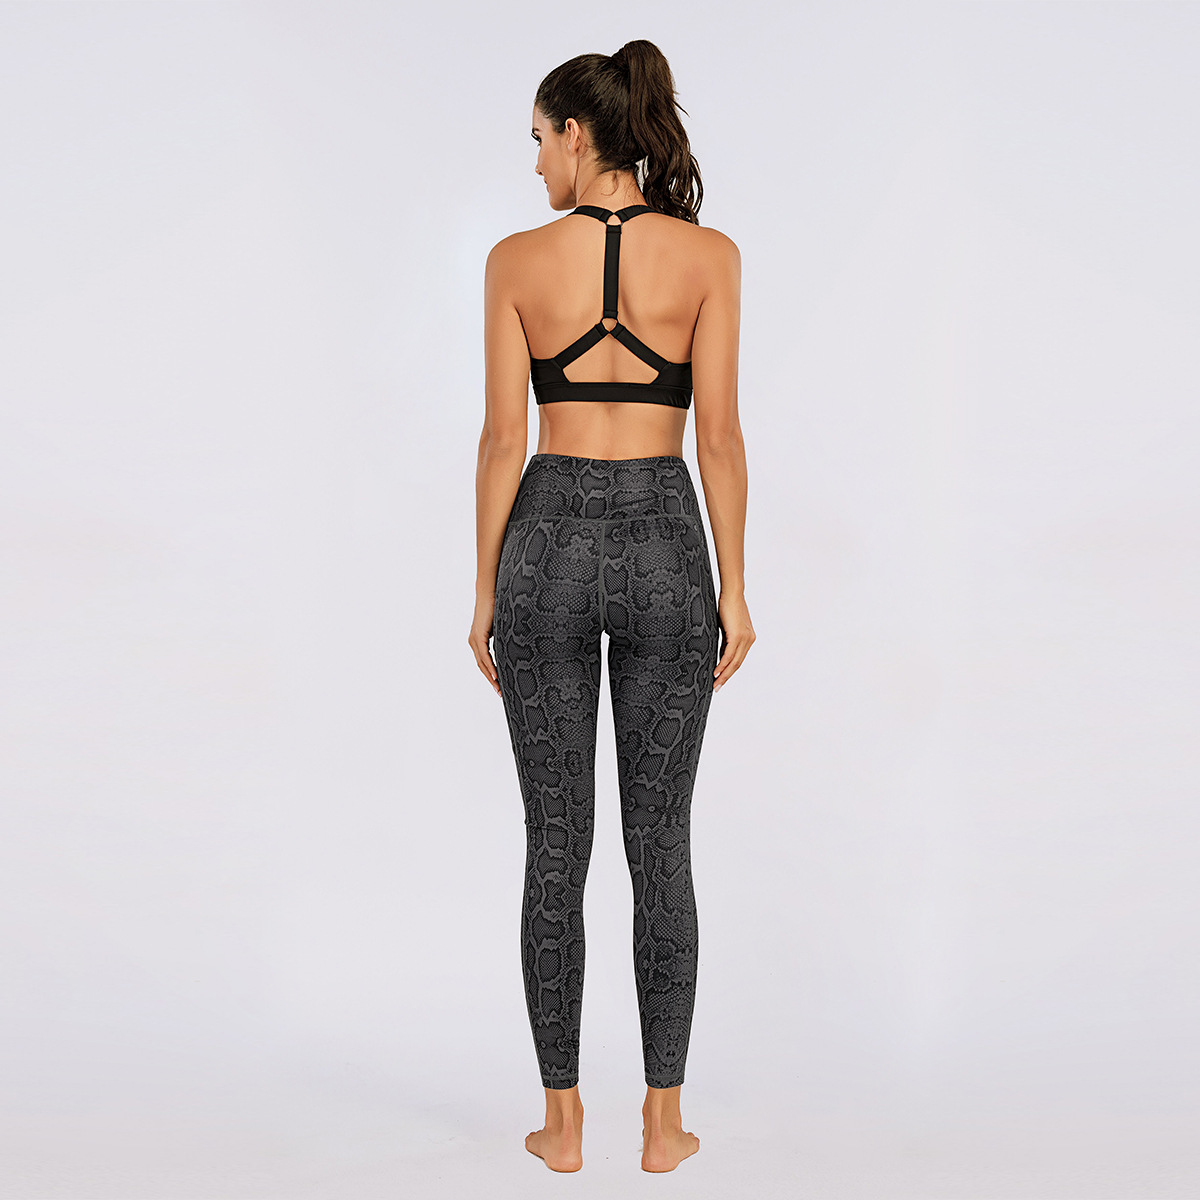 Women Sportswear Black Printed Yoga Pant Pocket Sports Leggings High Stretchy Gym Tights Women Running Pants Fitness Clothes Sport9s